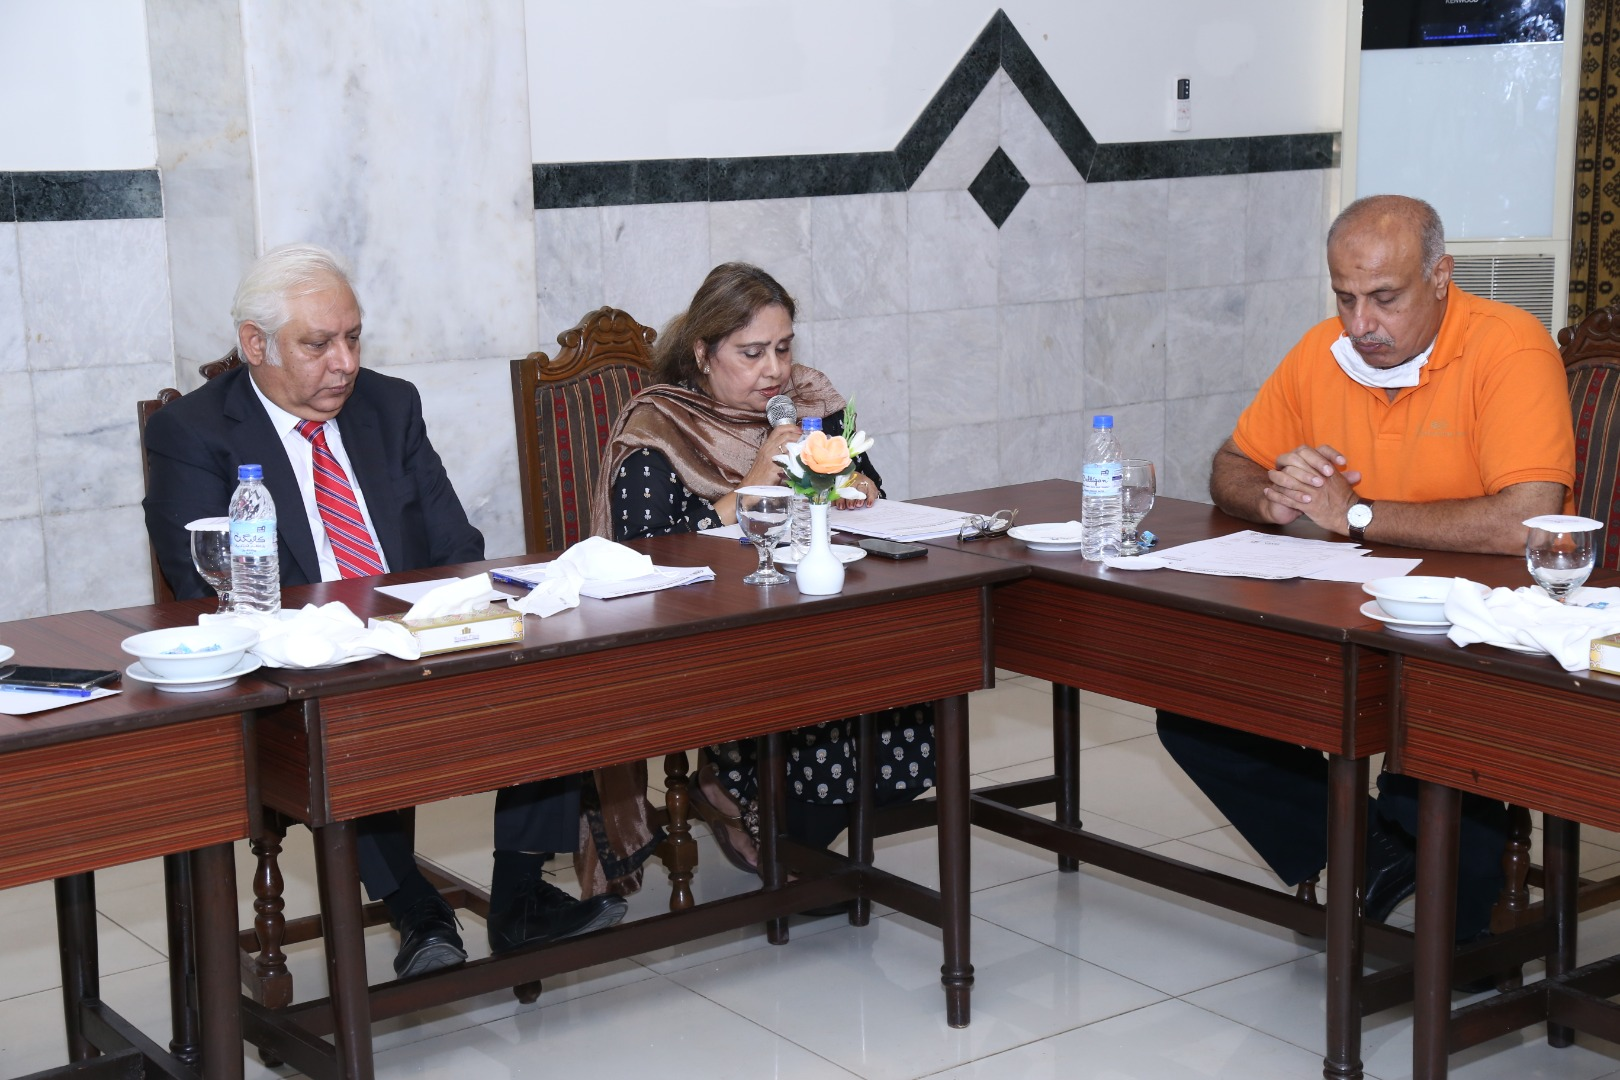 56th Annual General Meeting of PHA was held at Regent Plaza Hotel, Karachi on September 29, 2020